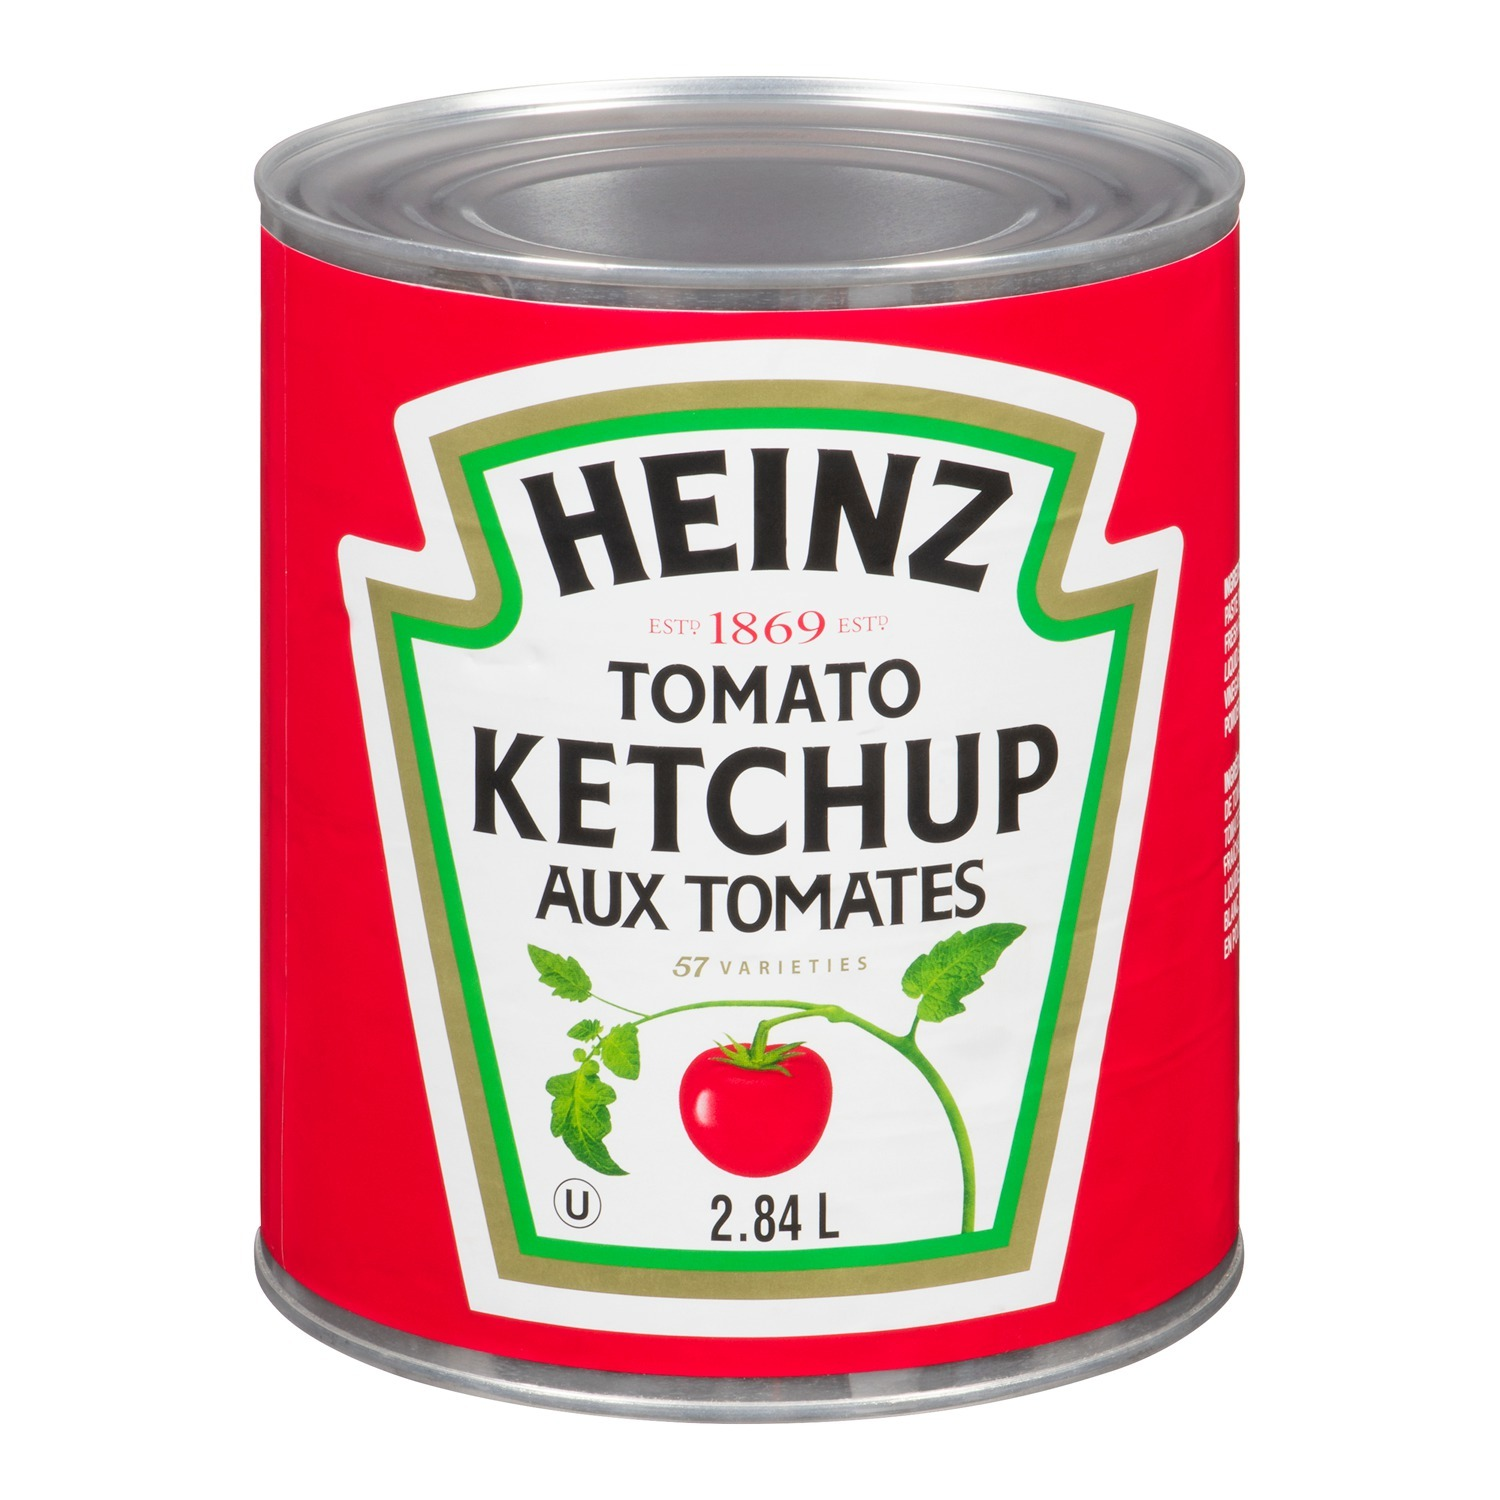 HEINZ Ketchup #10 Can 2.84L 6